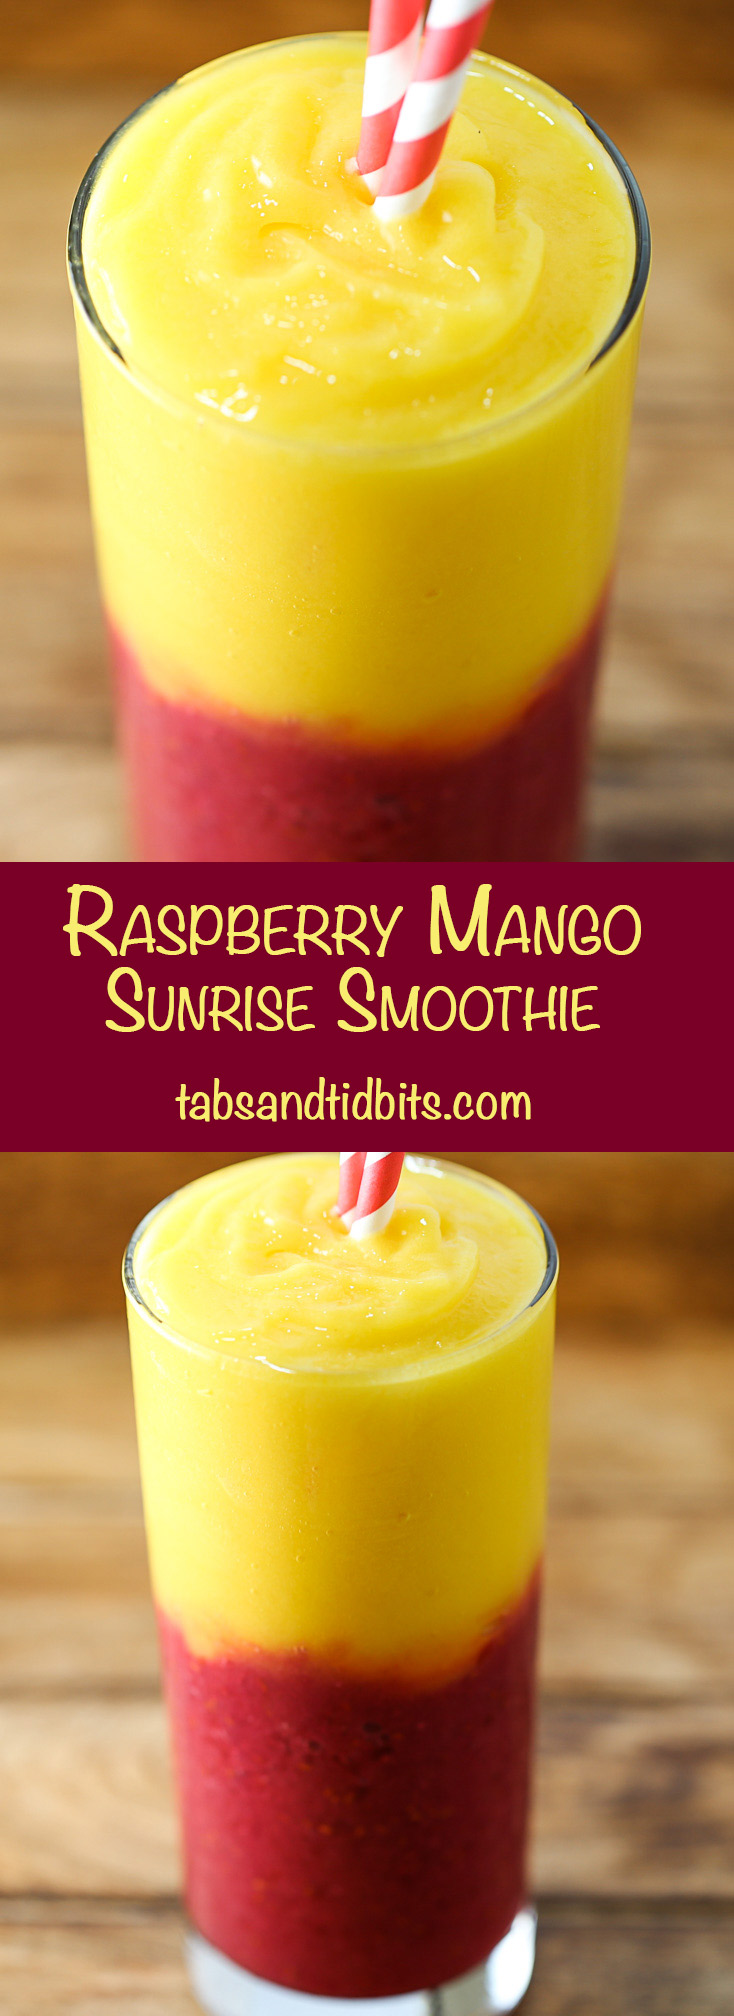 Raspberry Mango Sunrise Smoothie - A bright and tart raspberry layer topped with a layer of smooth and sweet mango!